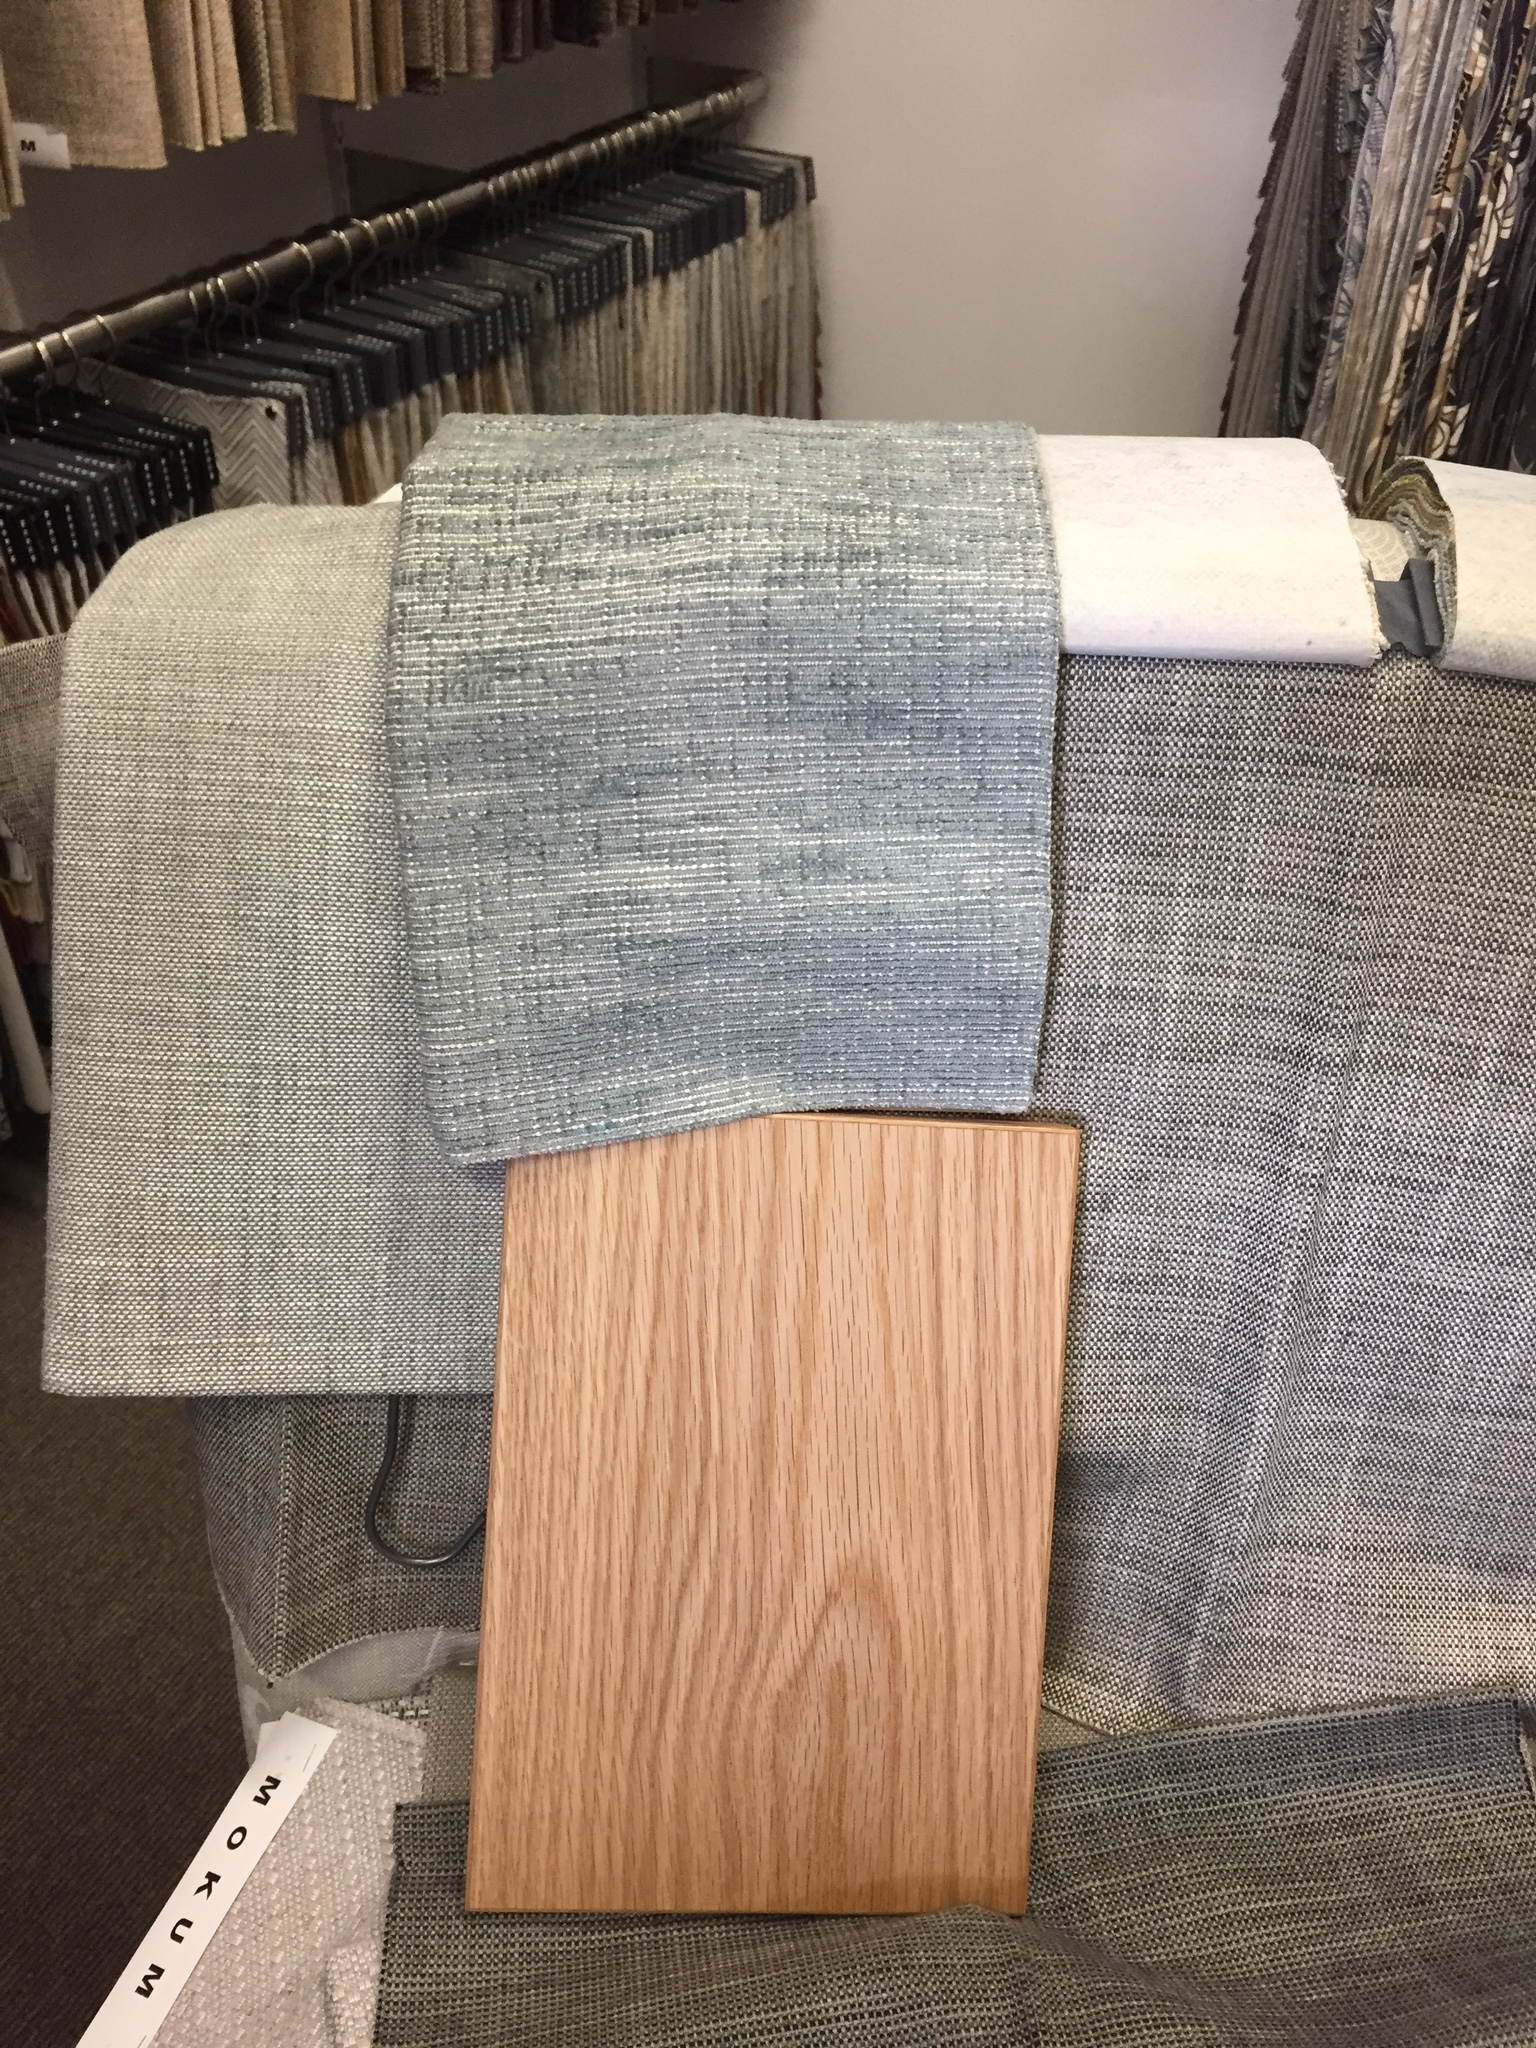 American Oak veneer we're using in the dining/living room area is lined up against some potential Hokum fabrics.